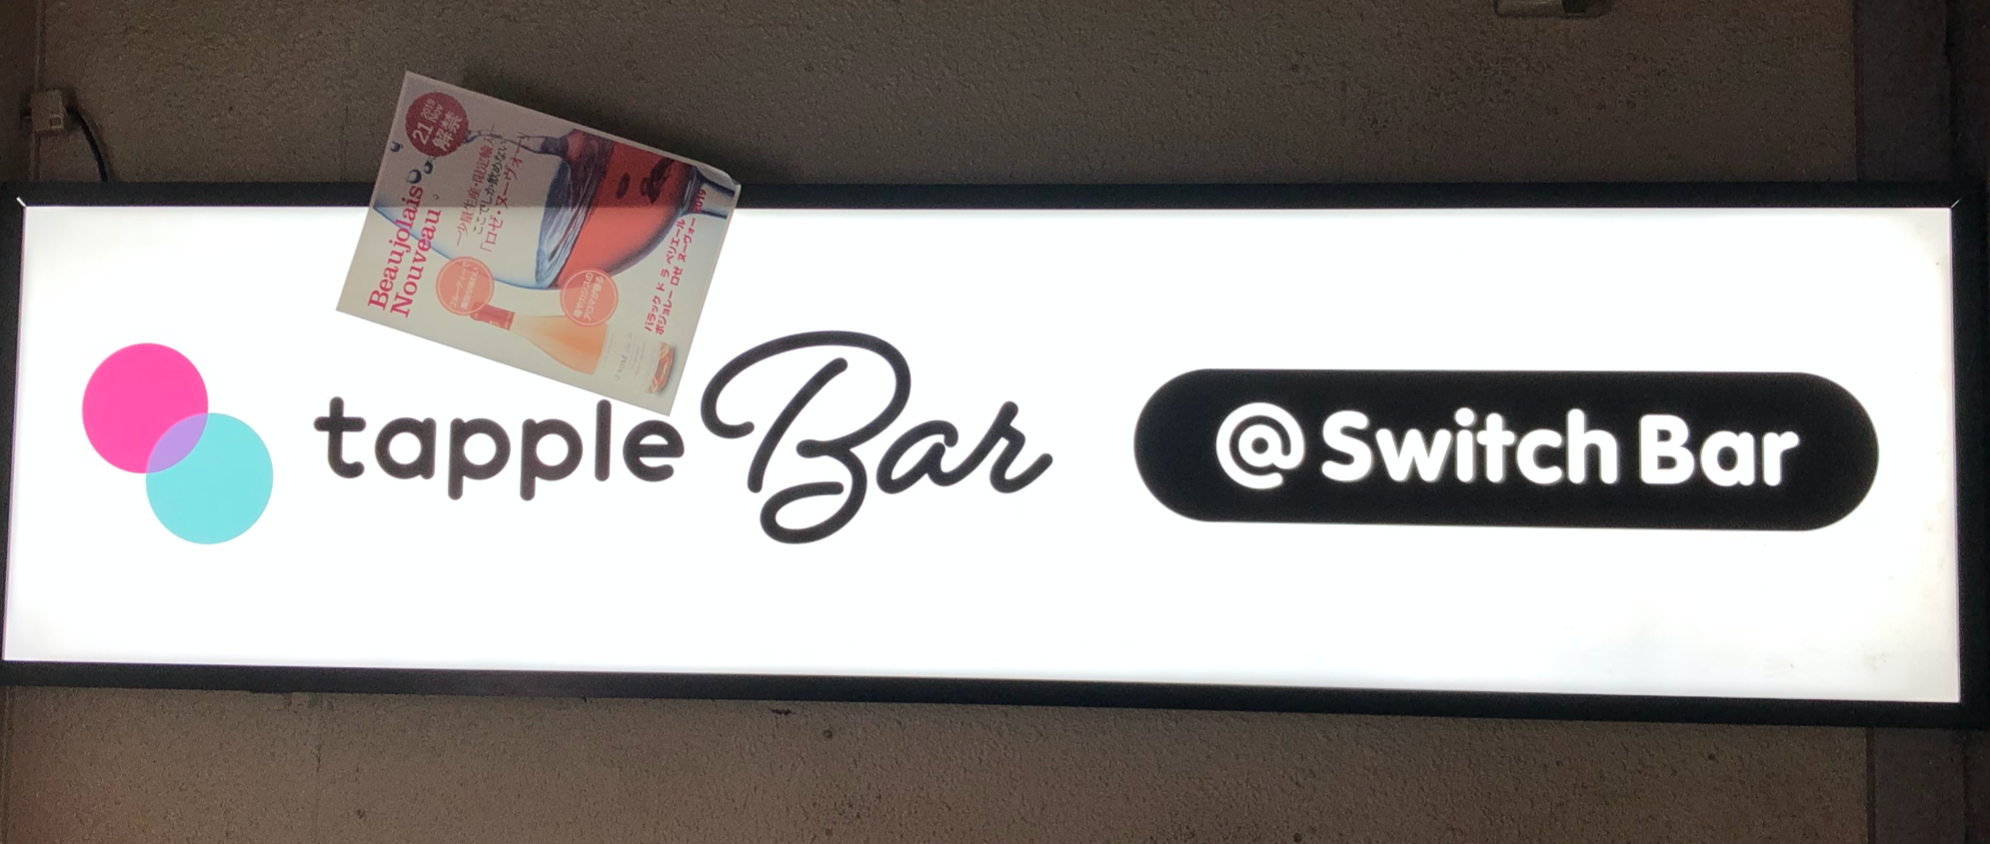 switch bar